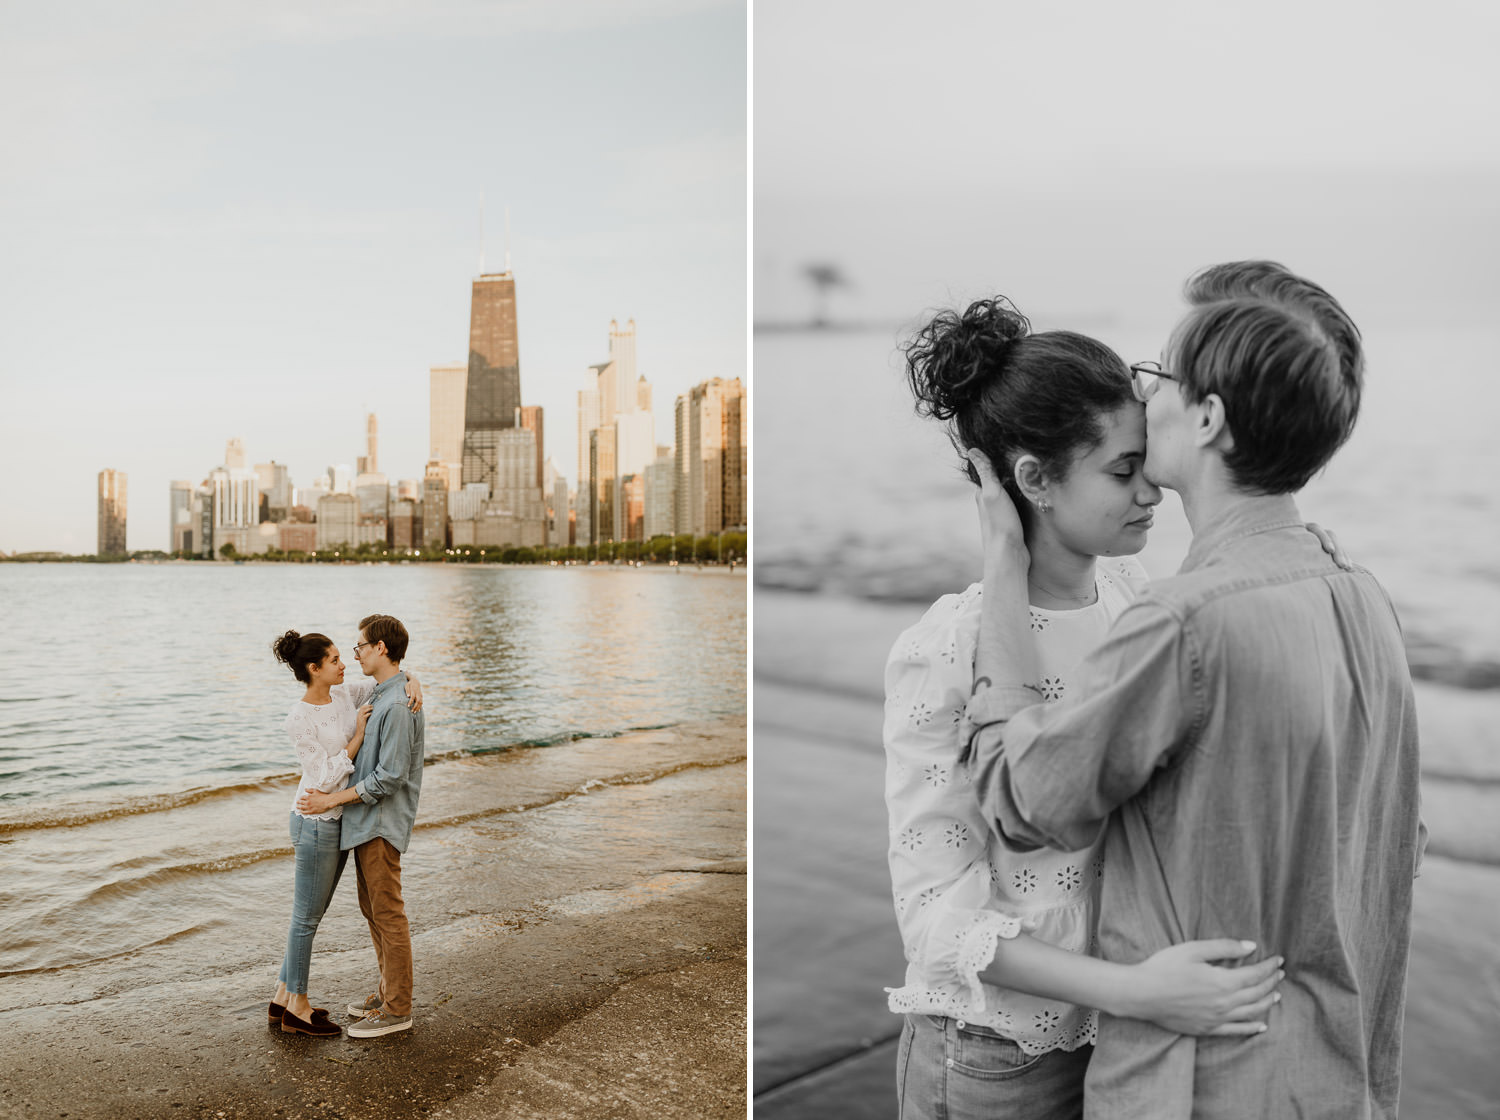 Engagement session pictures at North Ave Beach in Chicago taken during sunset